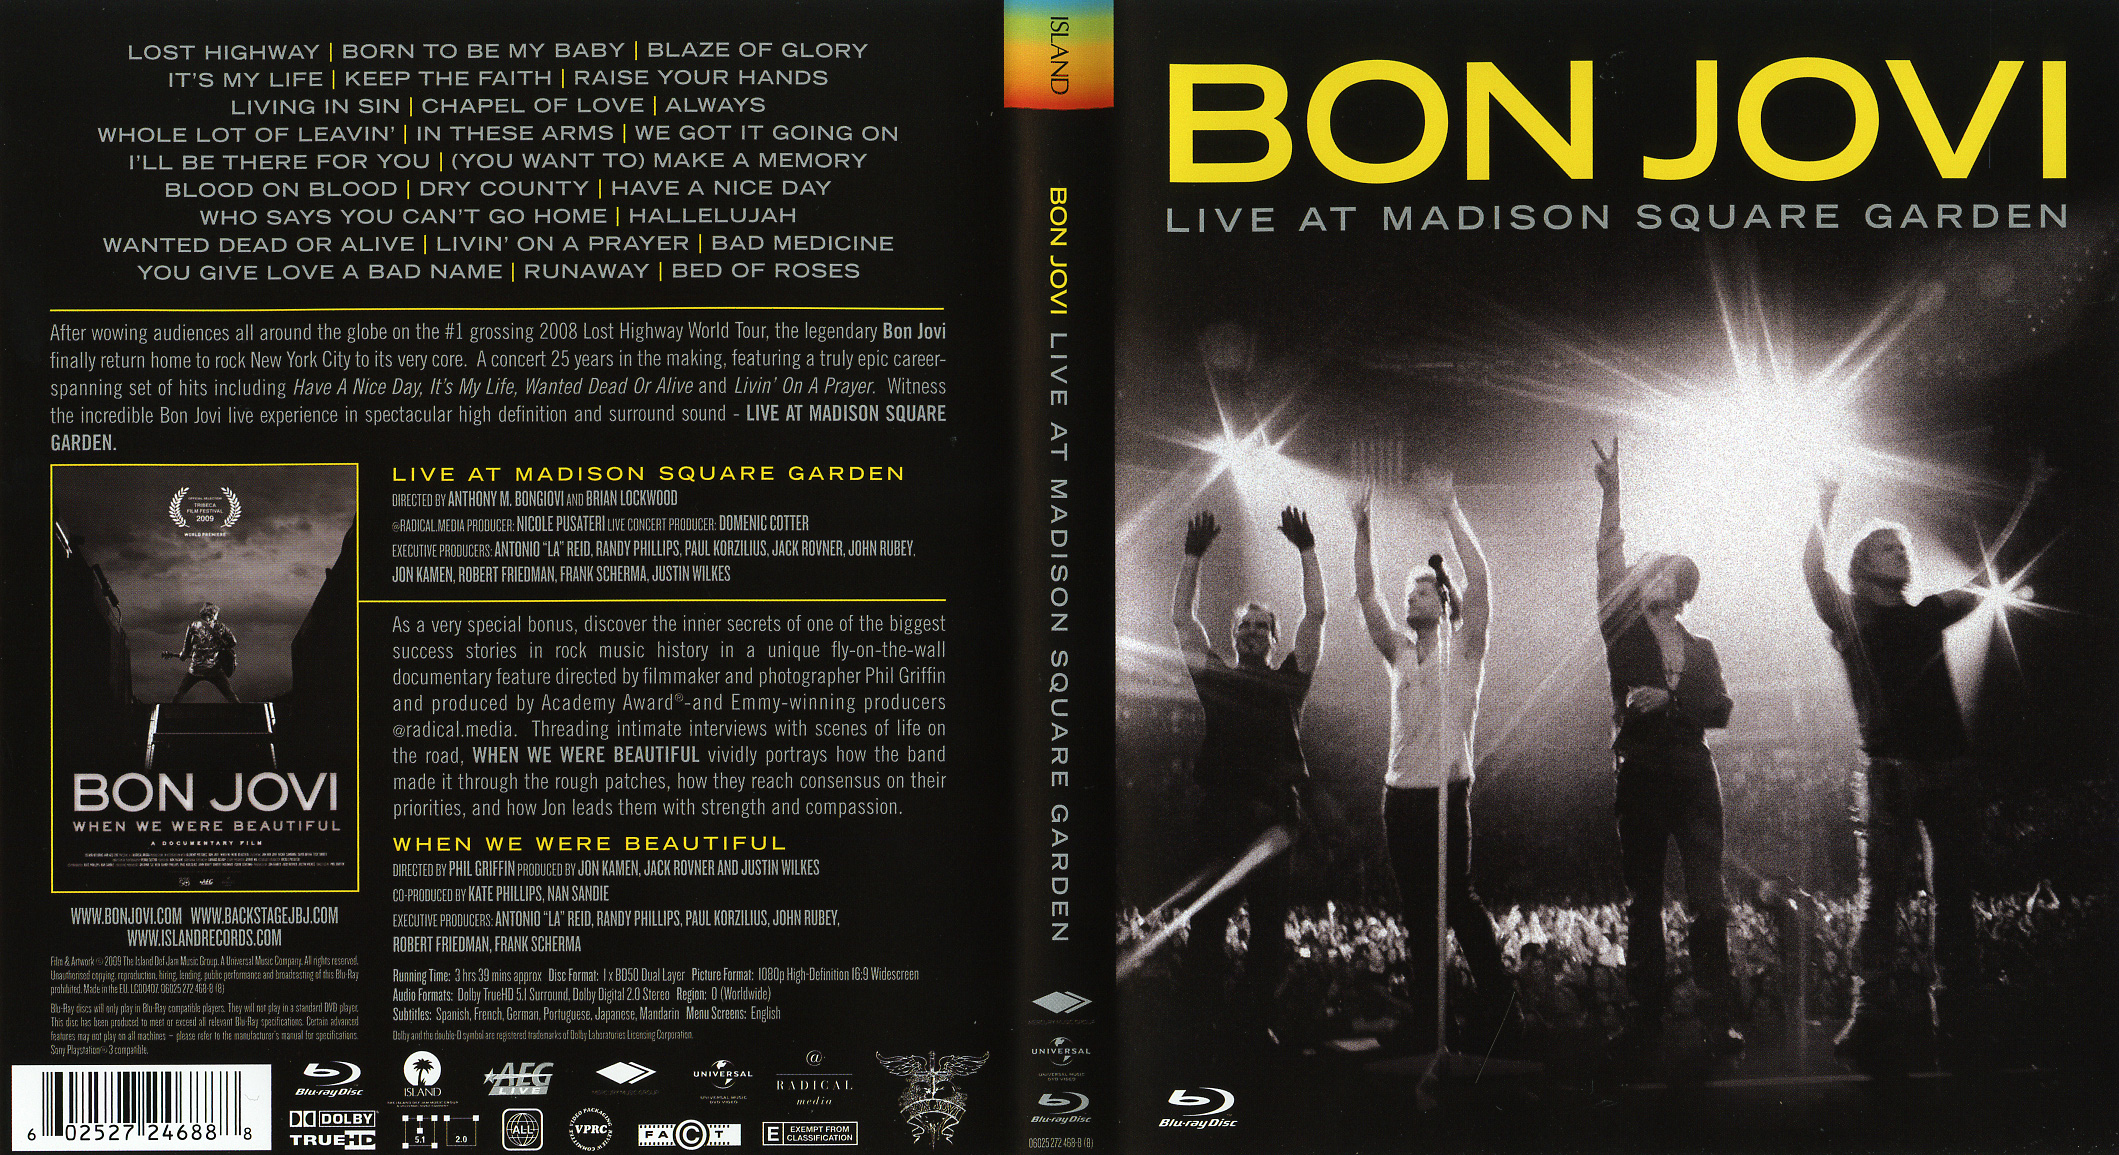 Bed Of Roses Live At Madison Square Garden